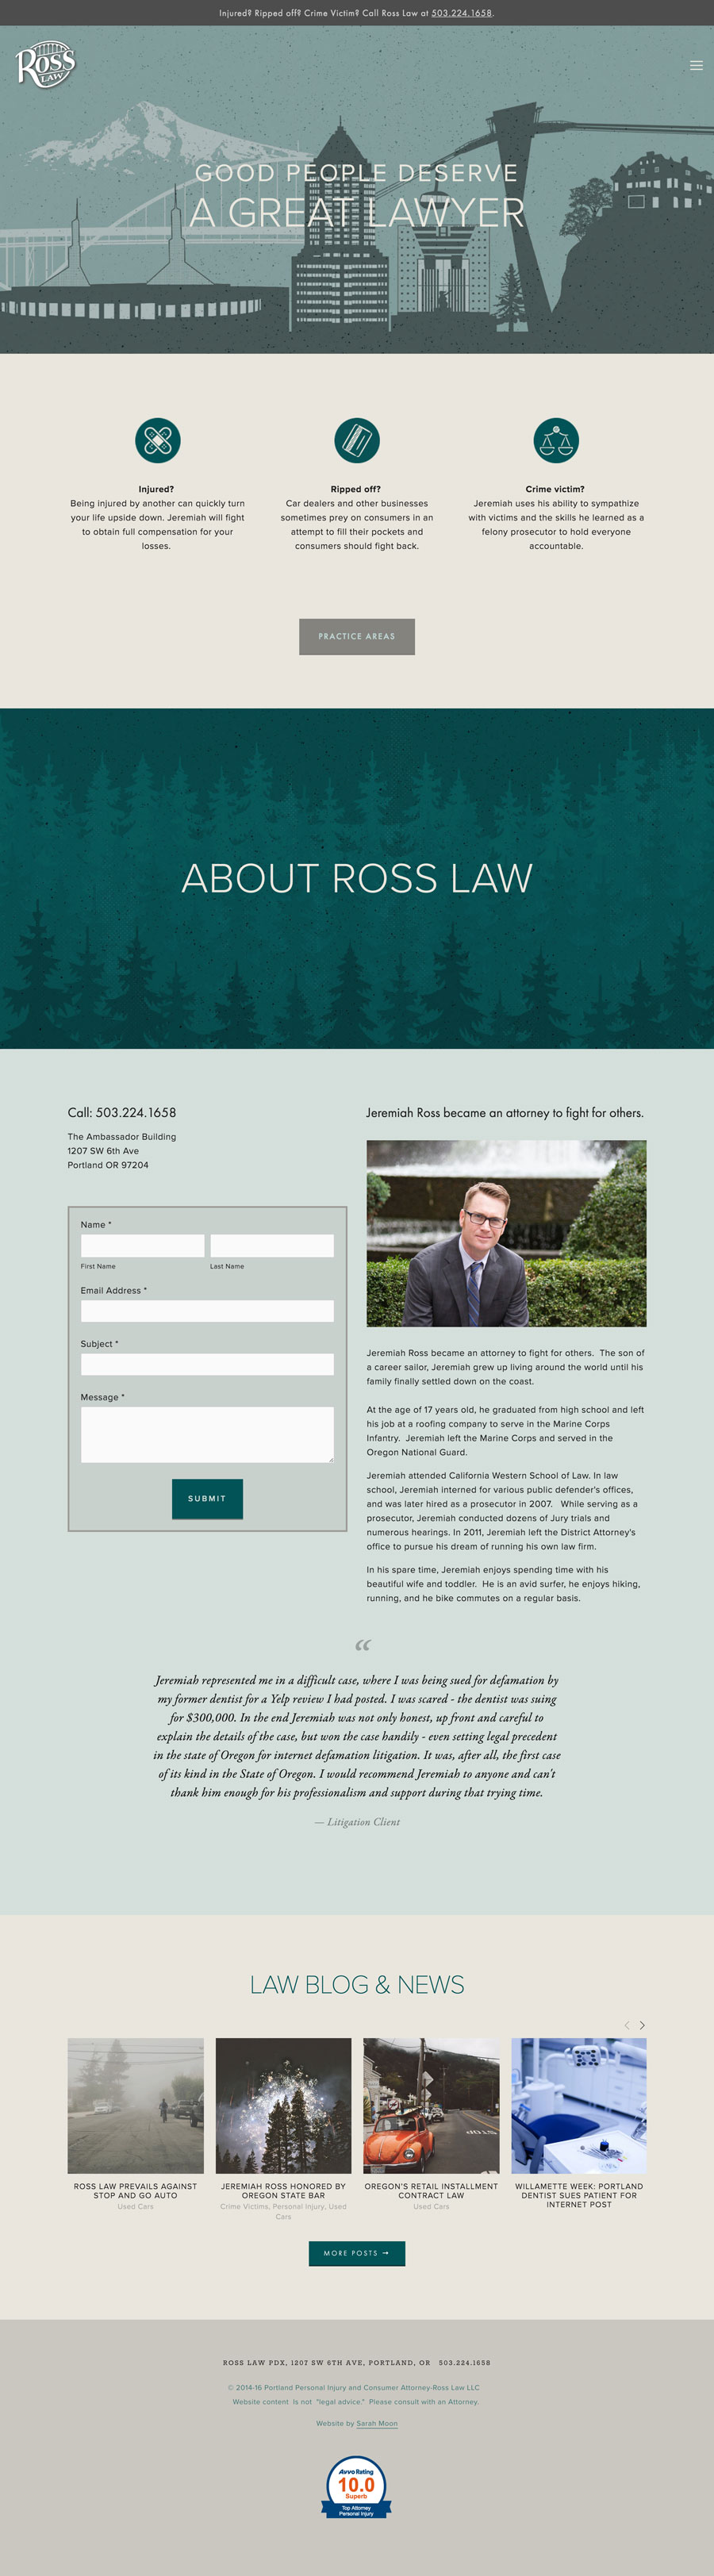 Website design for Portland attorney Jeremiah Ross, rosslawpdx.com; Design by Sarah Moon - sarahmoon.net